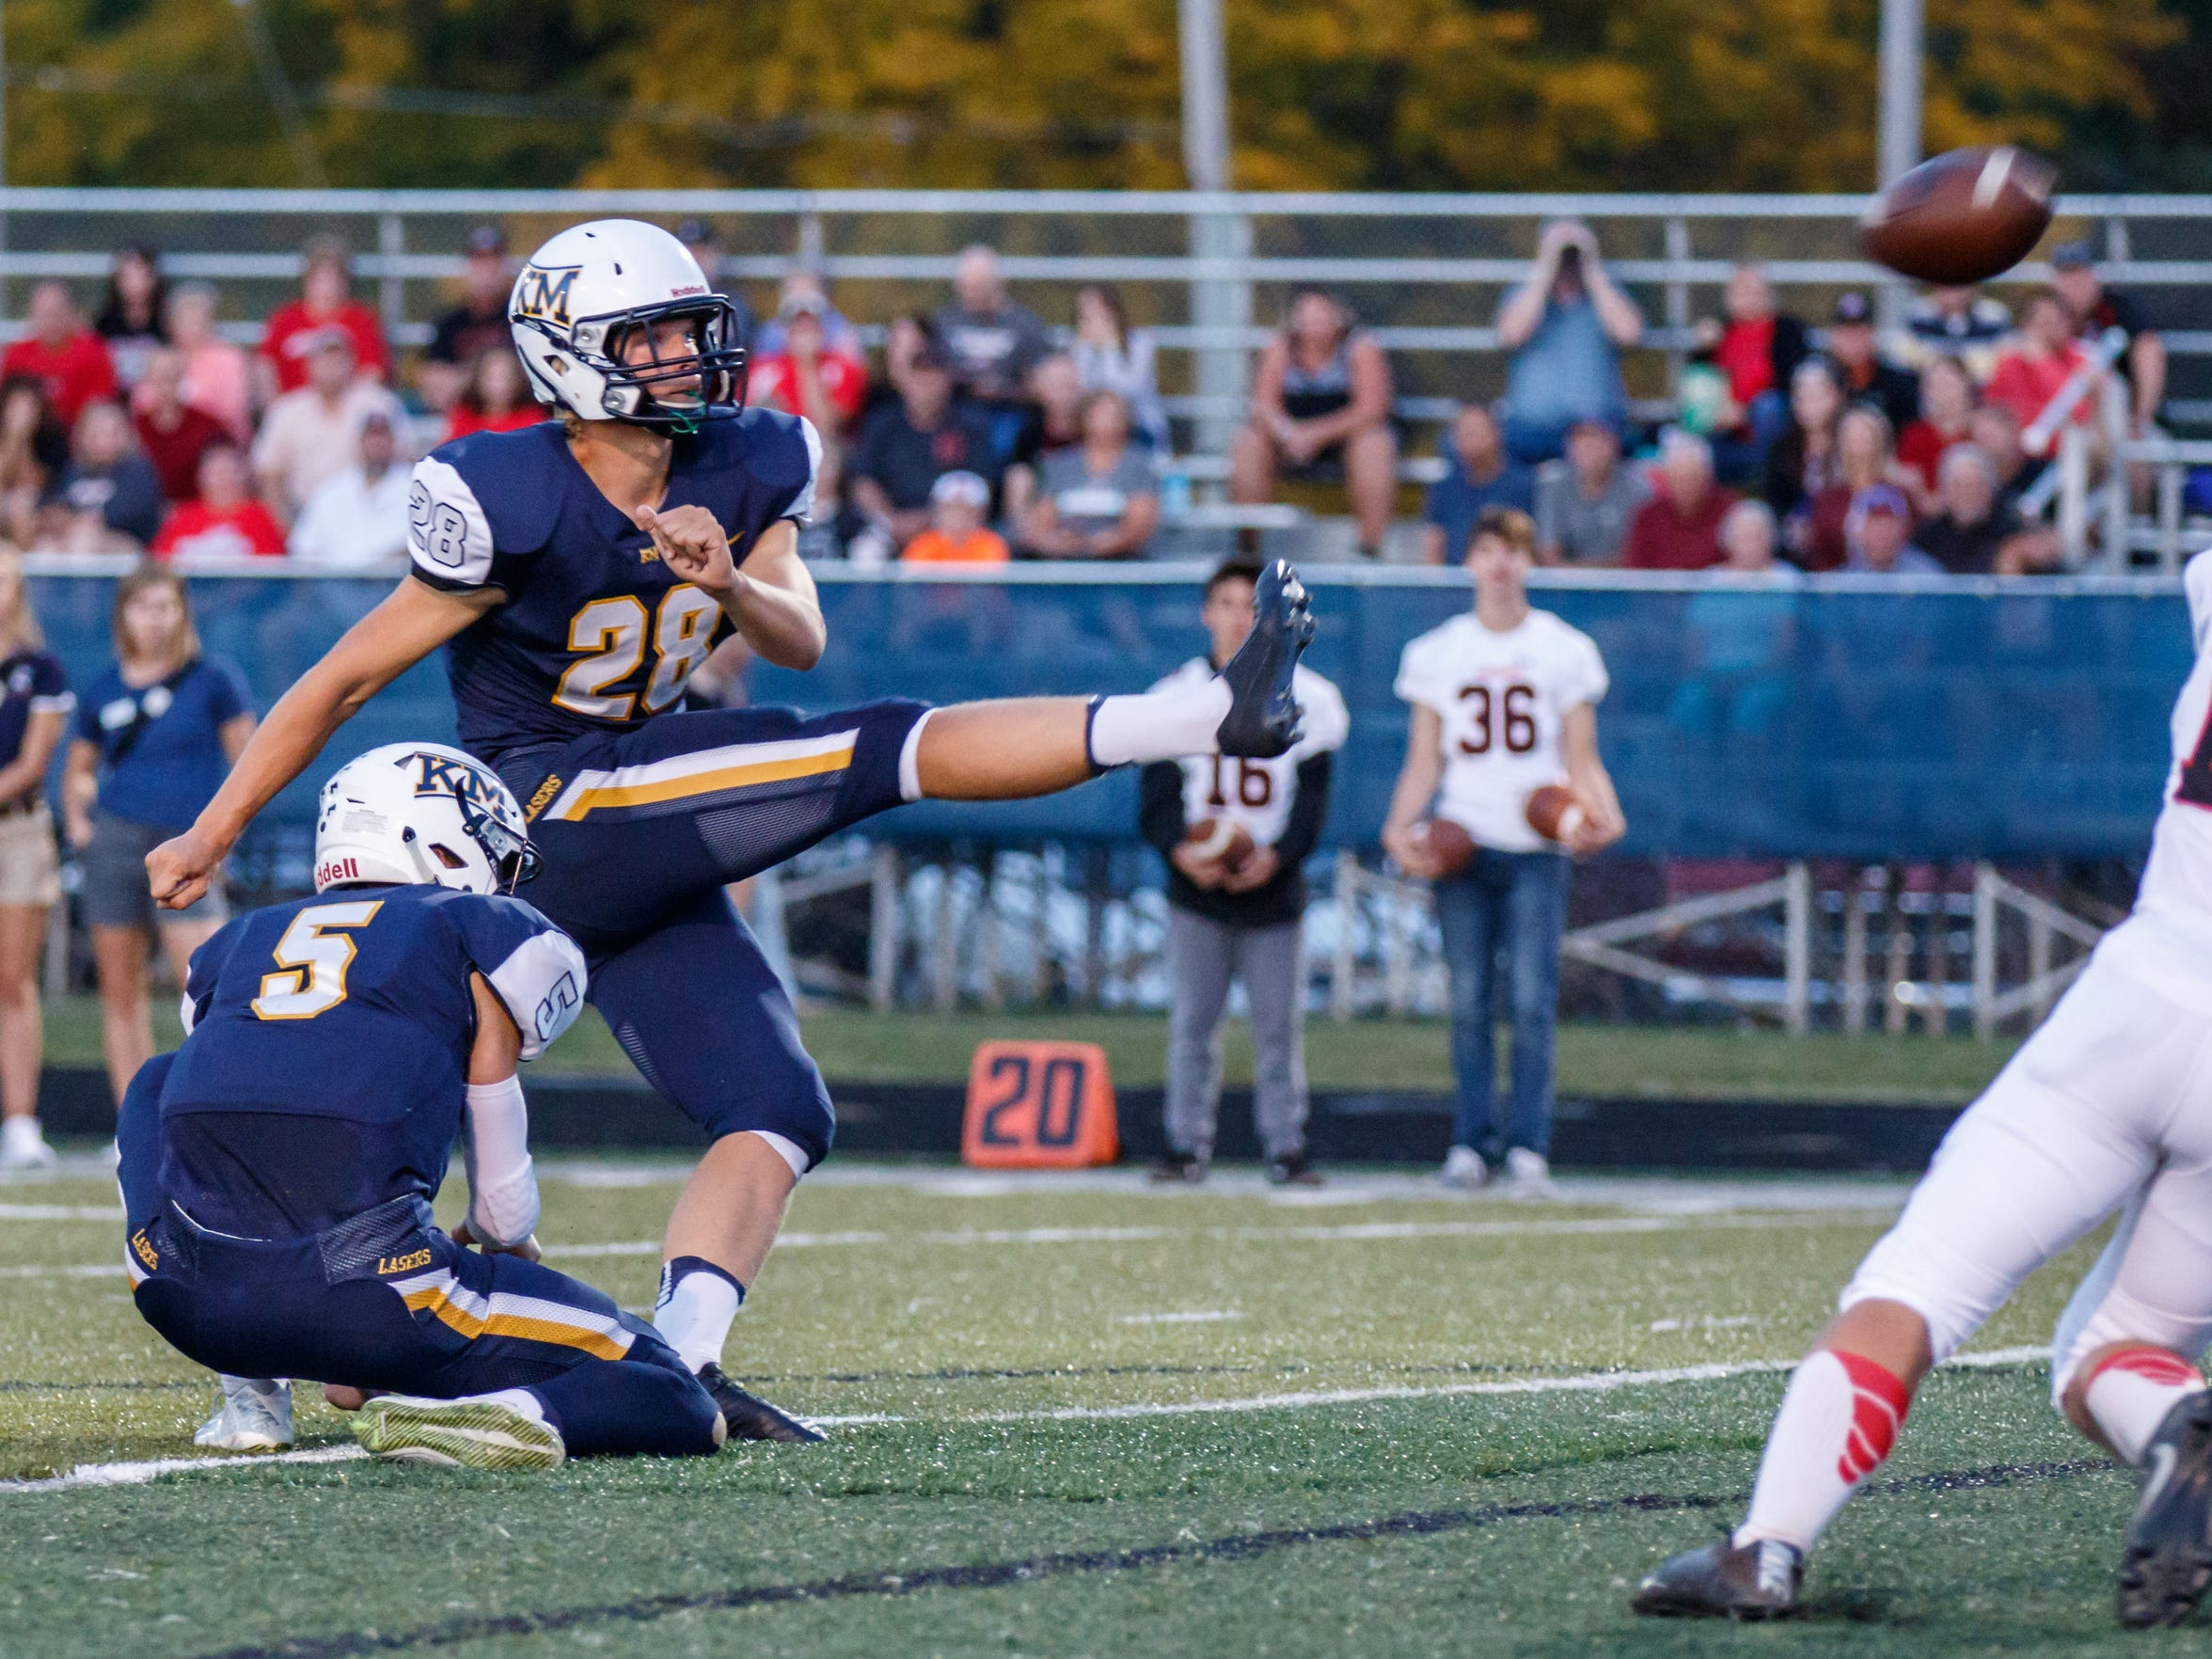 Kettle Moraine kicker Blake Wilcox (28) drills a PAT through the uprights during the game at home against Muskego on Friday, Sept. 15, 2017.